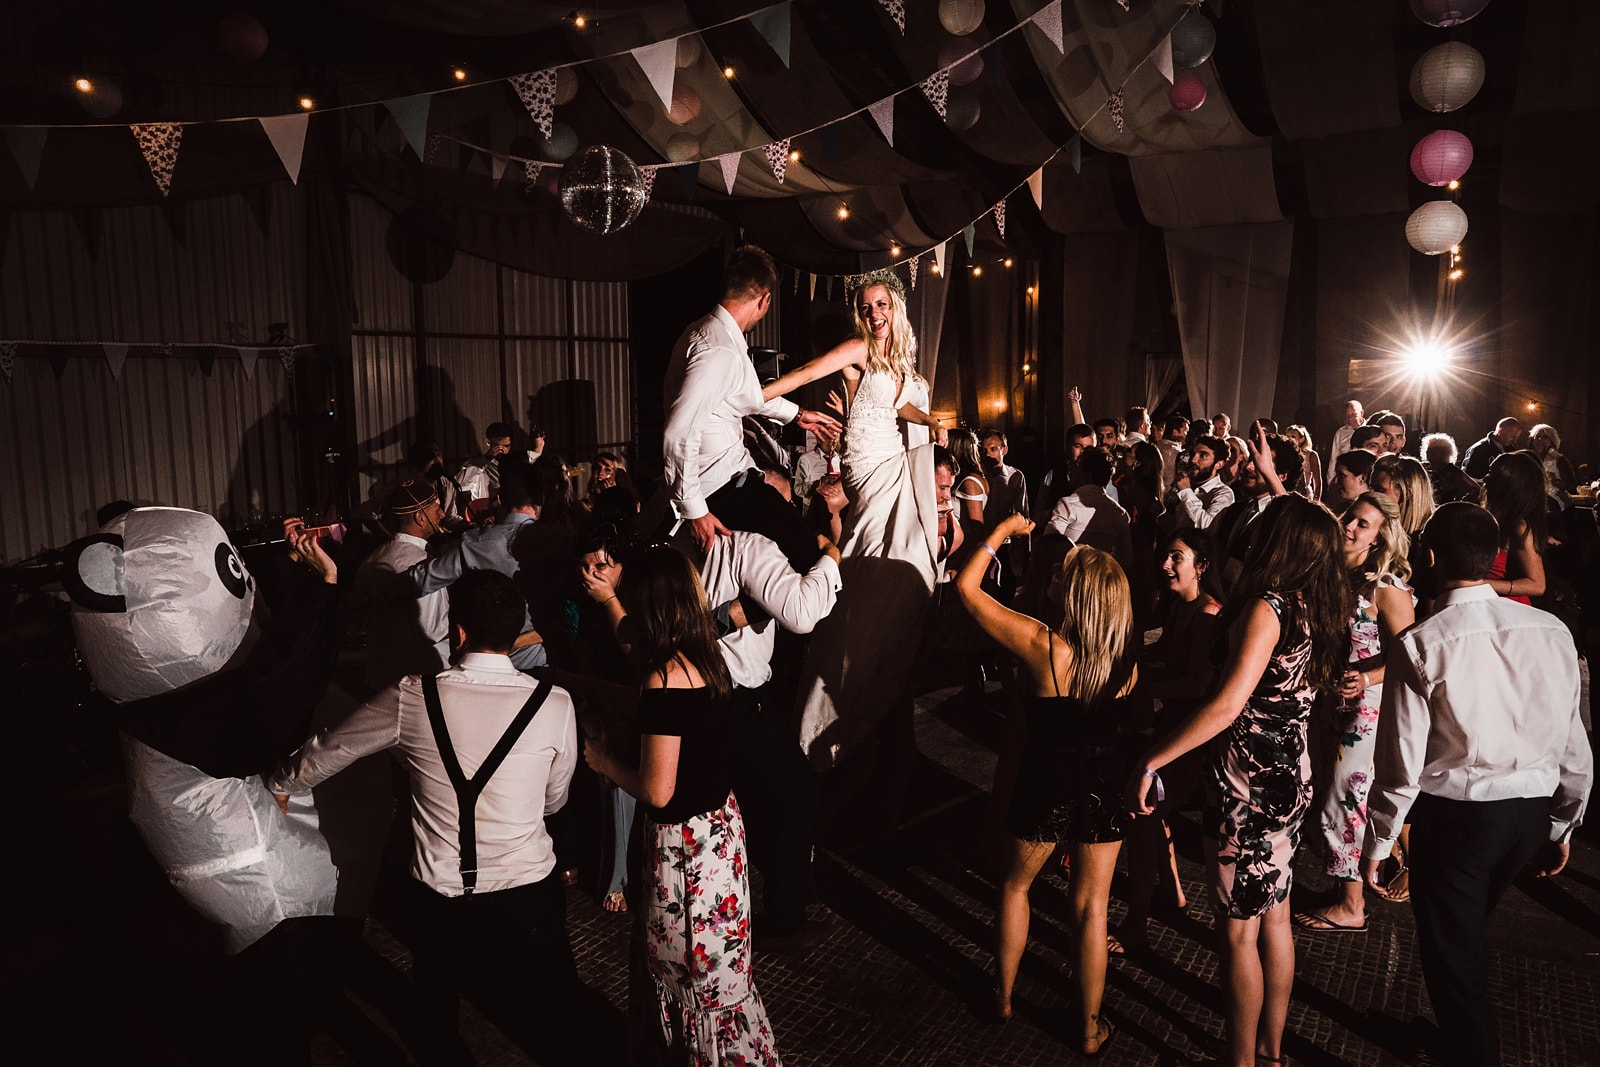 crazy barn festival wedding shot on a sony a9 camera